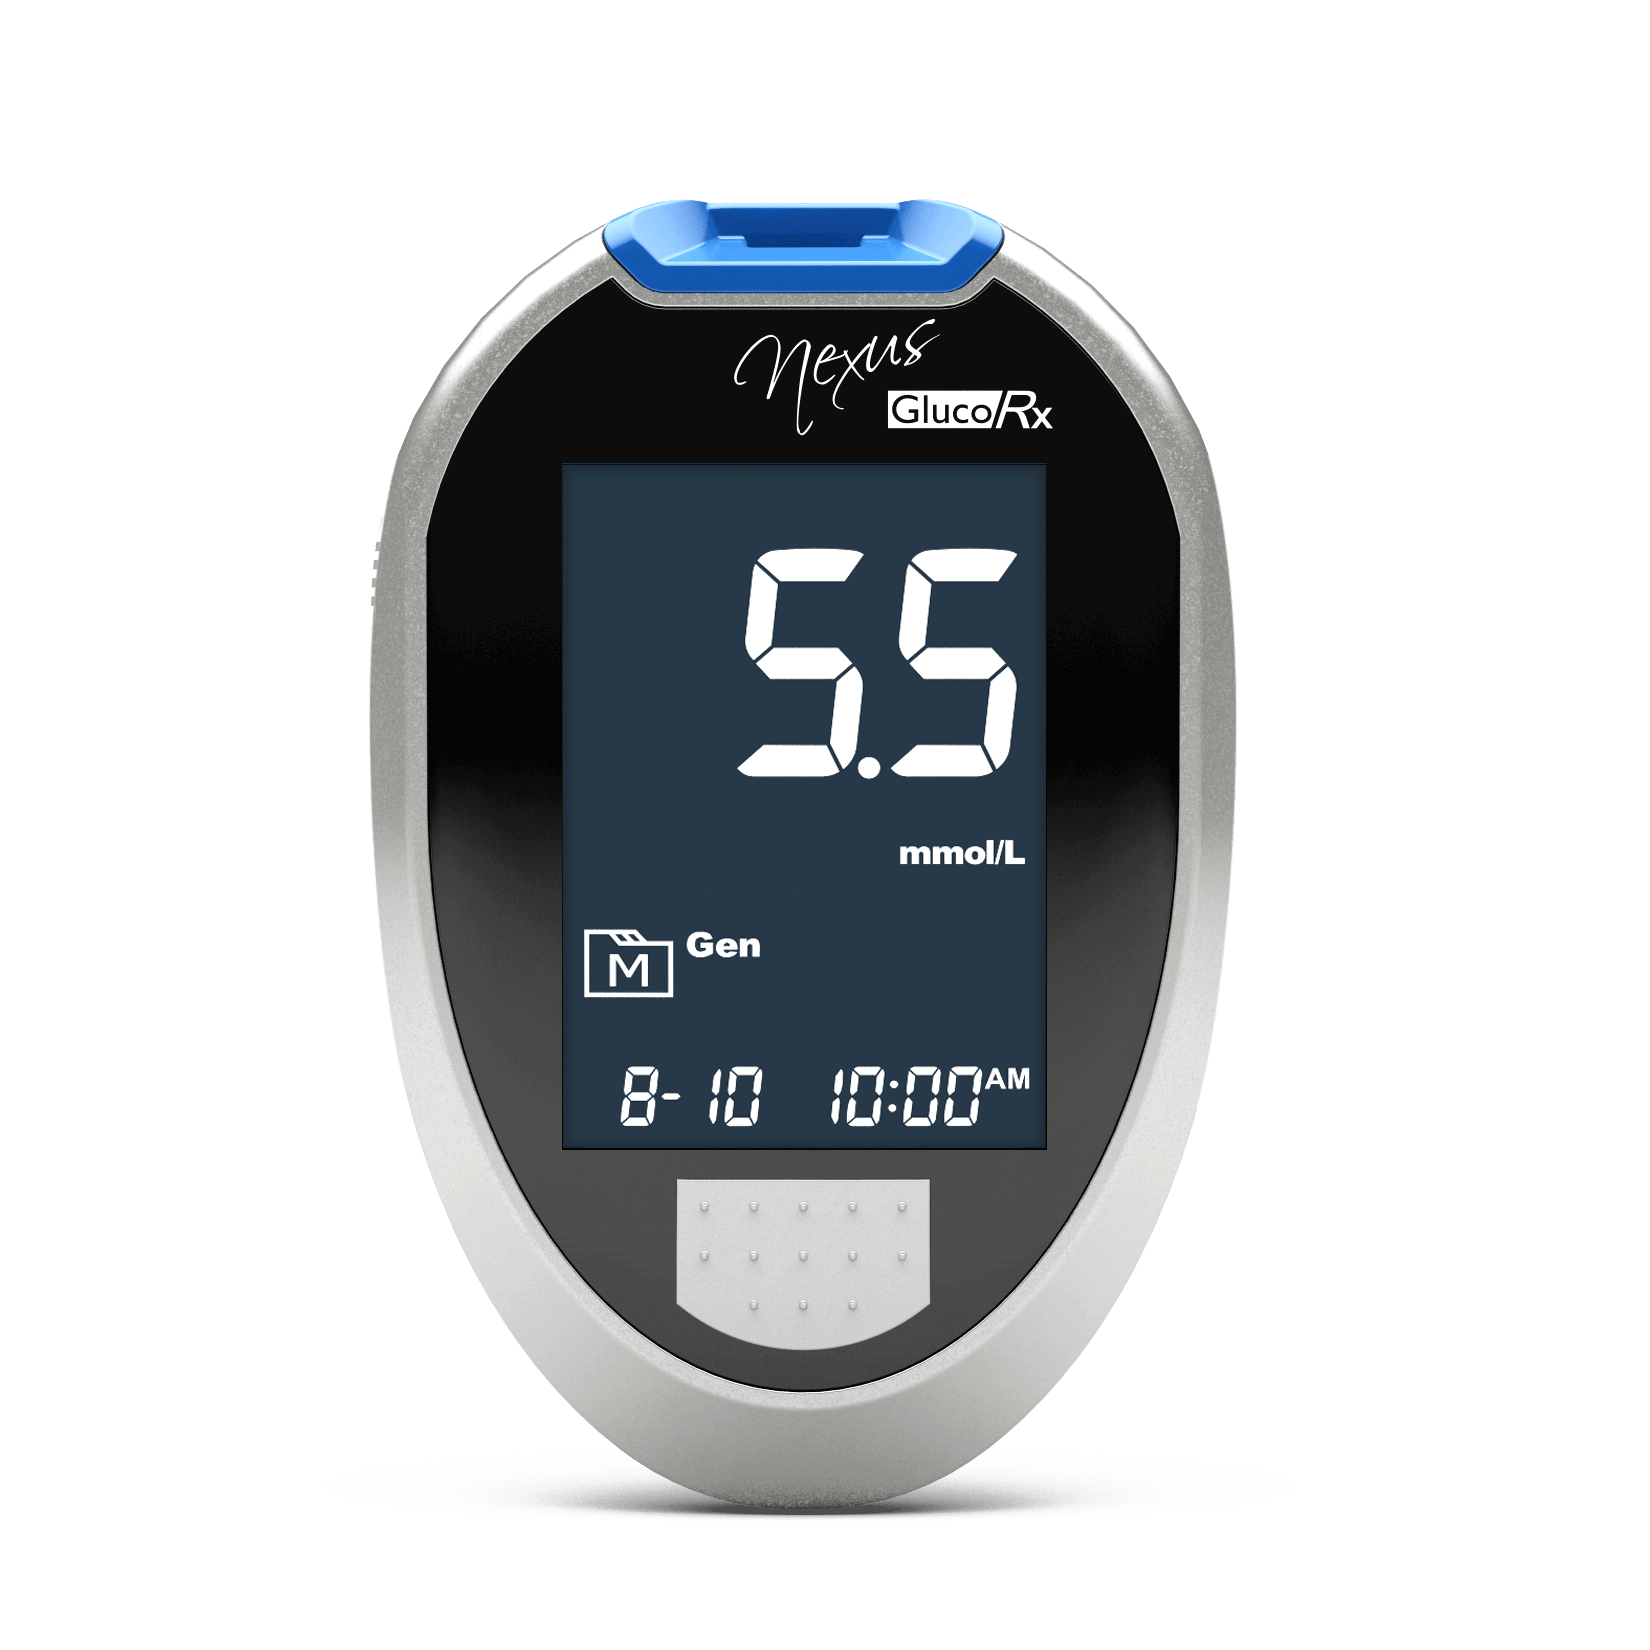 GlucoRx Nexus blood glucose meters